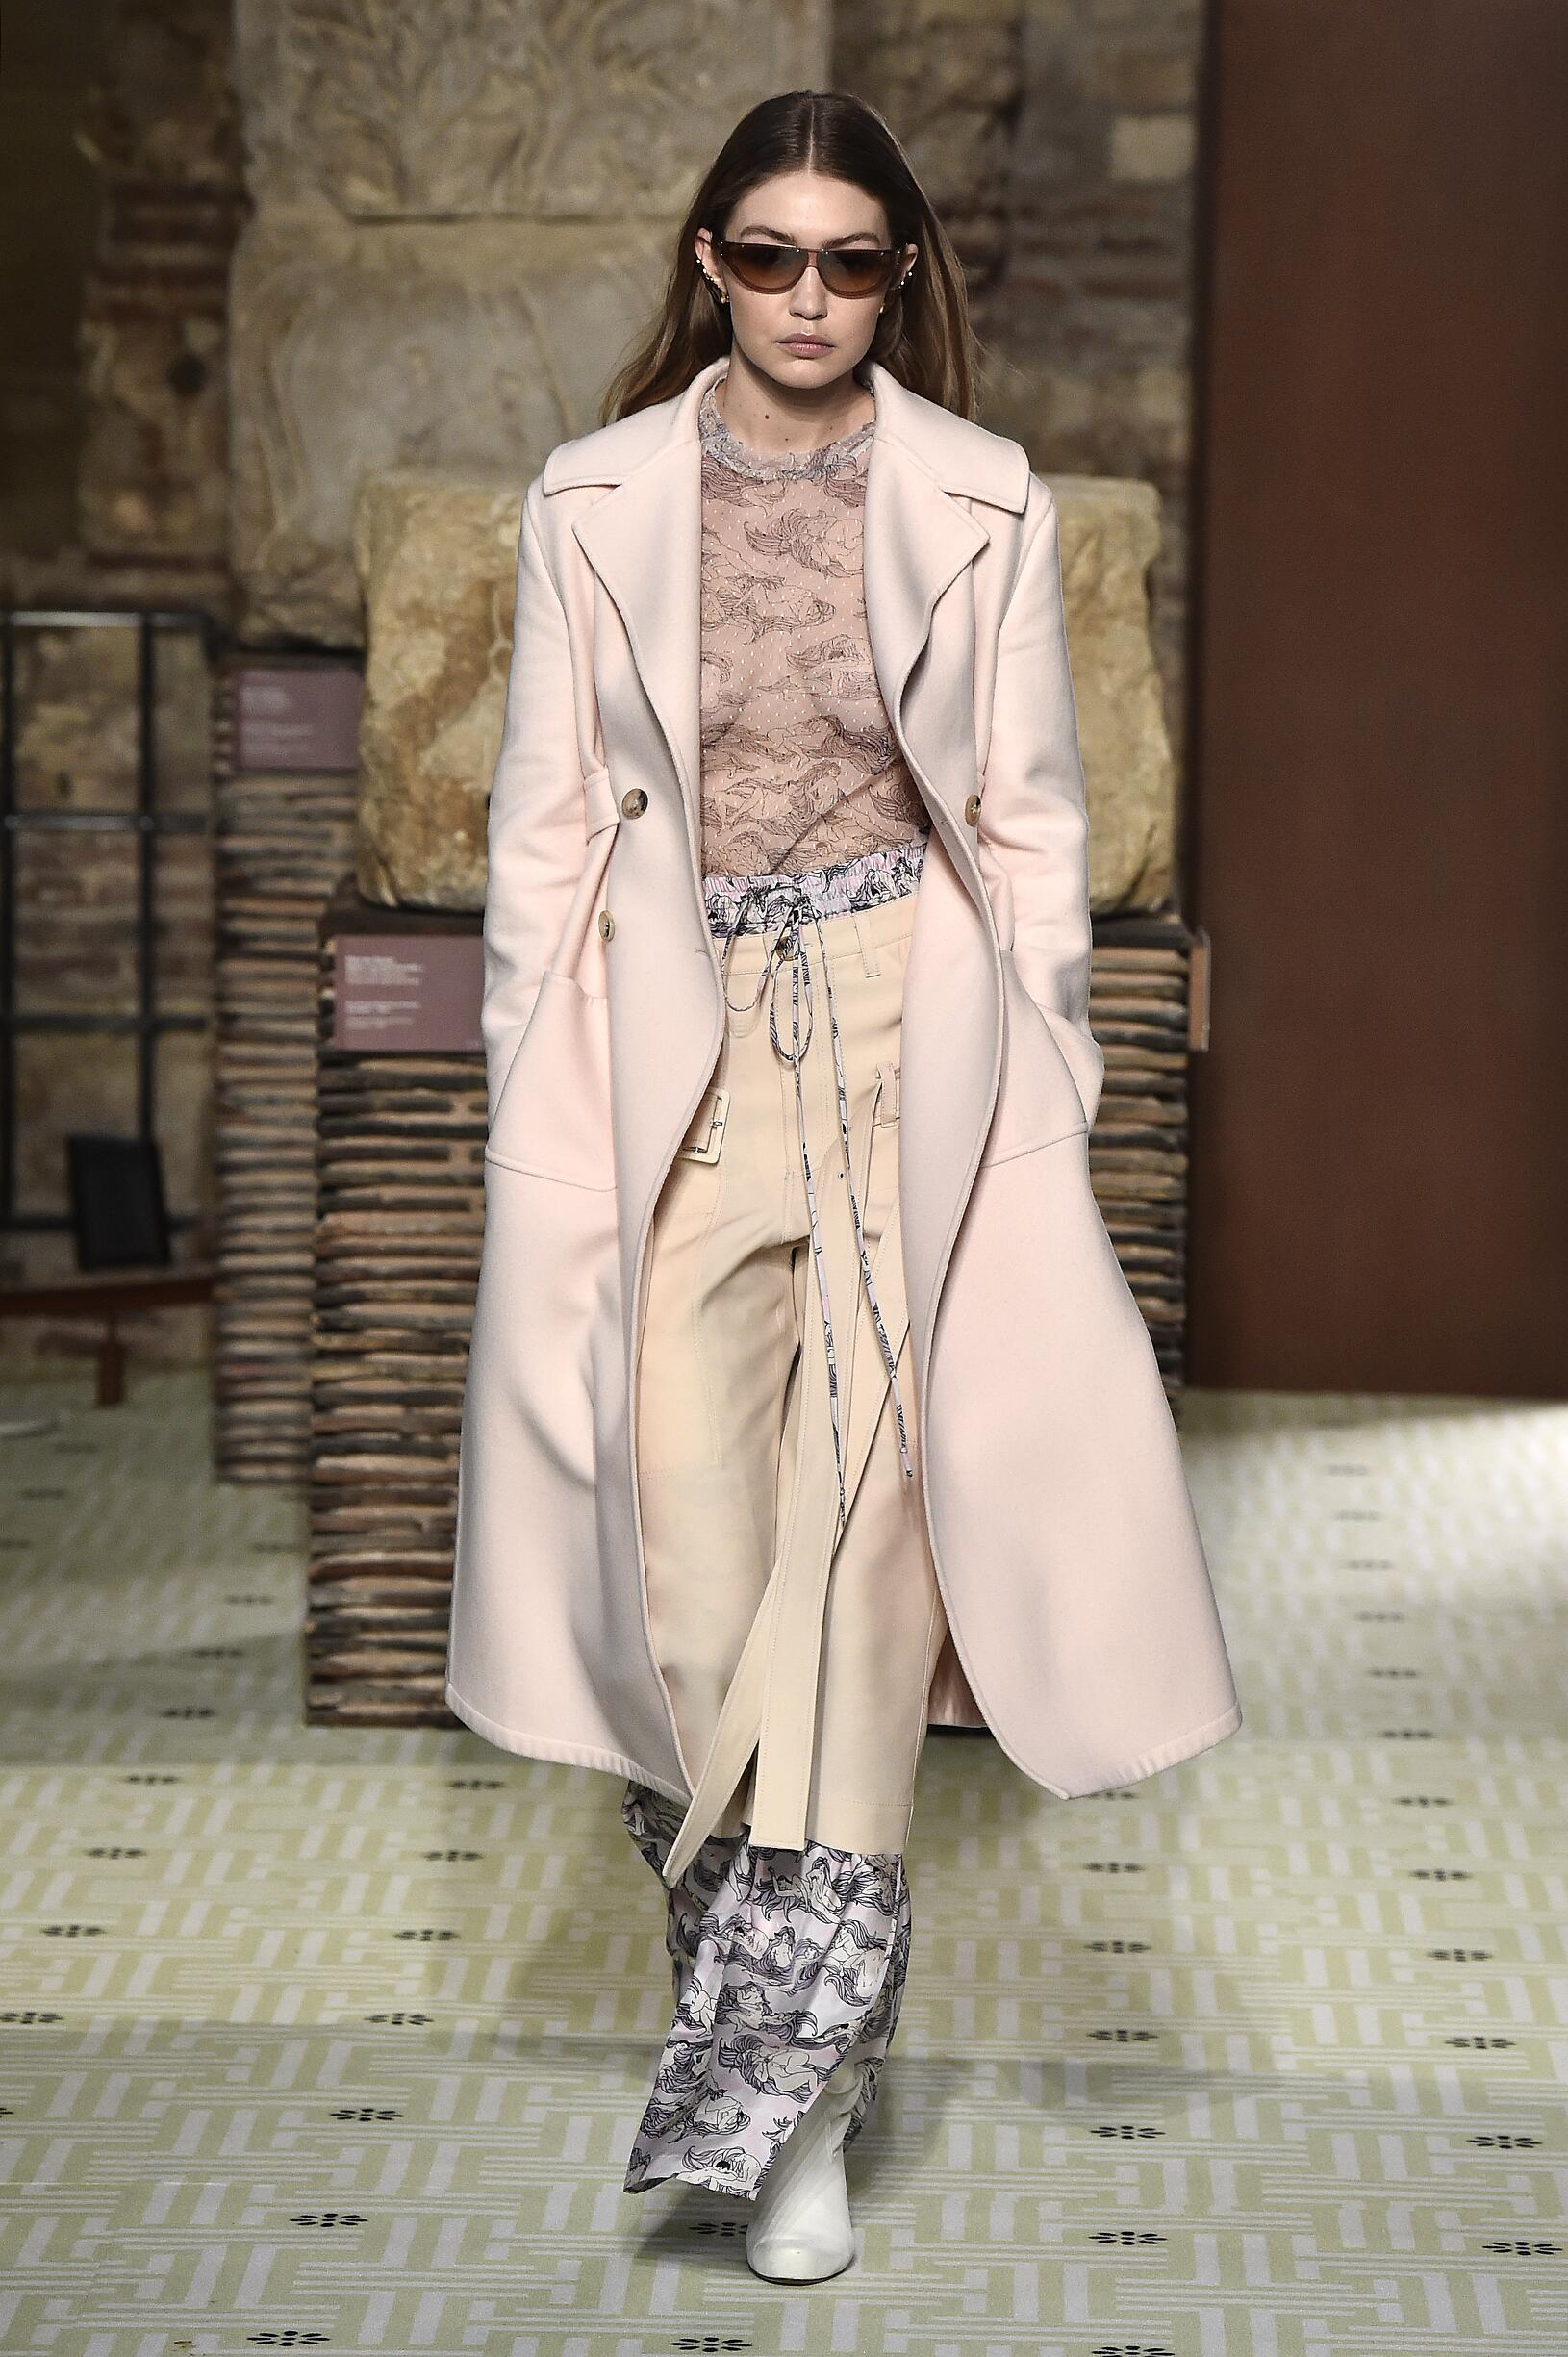 Lanvin Womenswear Collection Trends